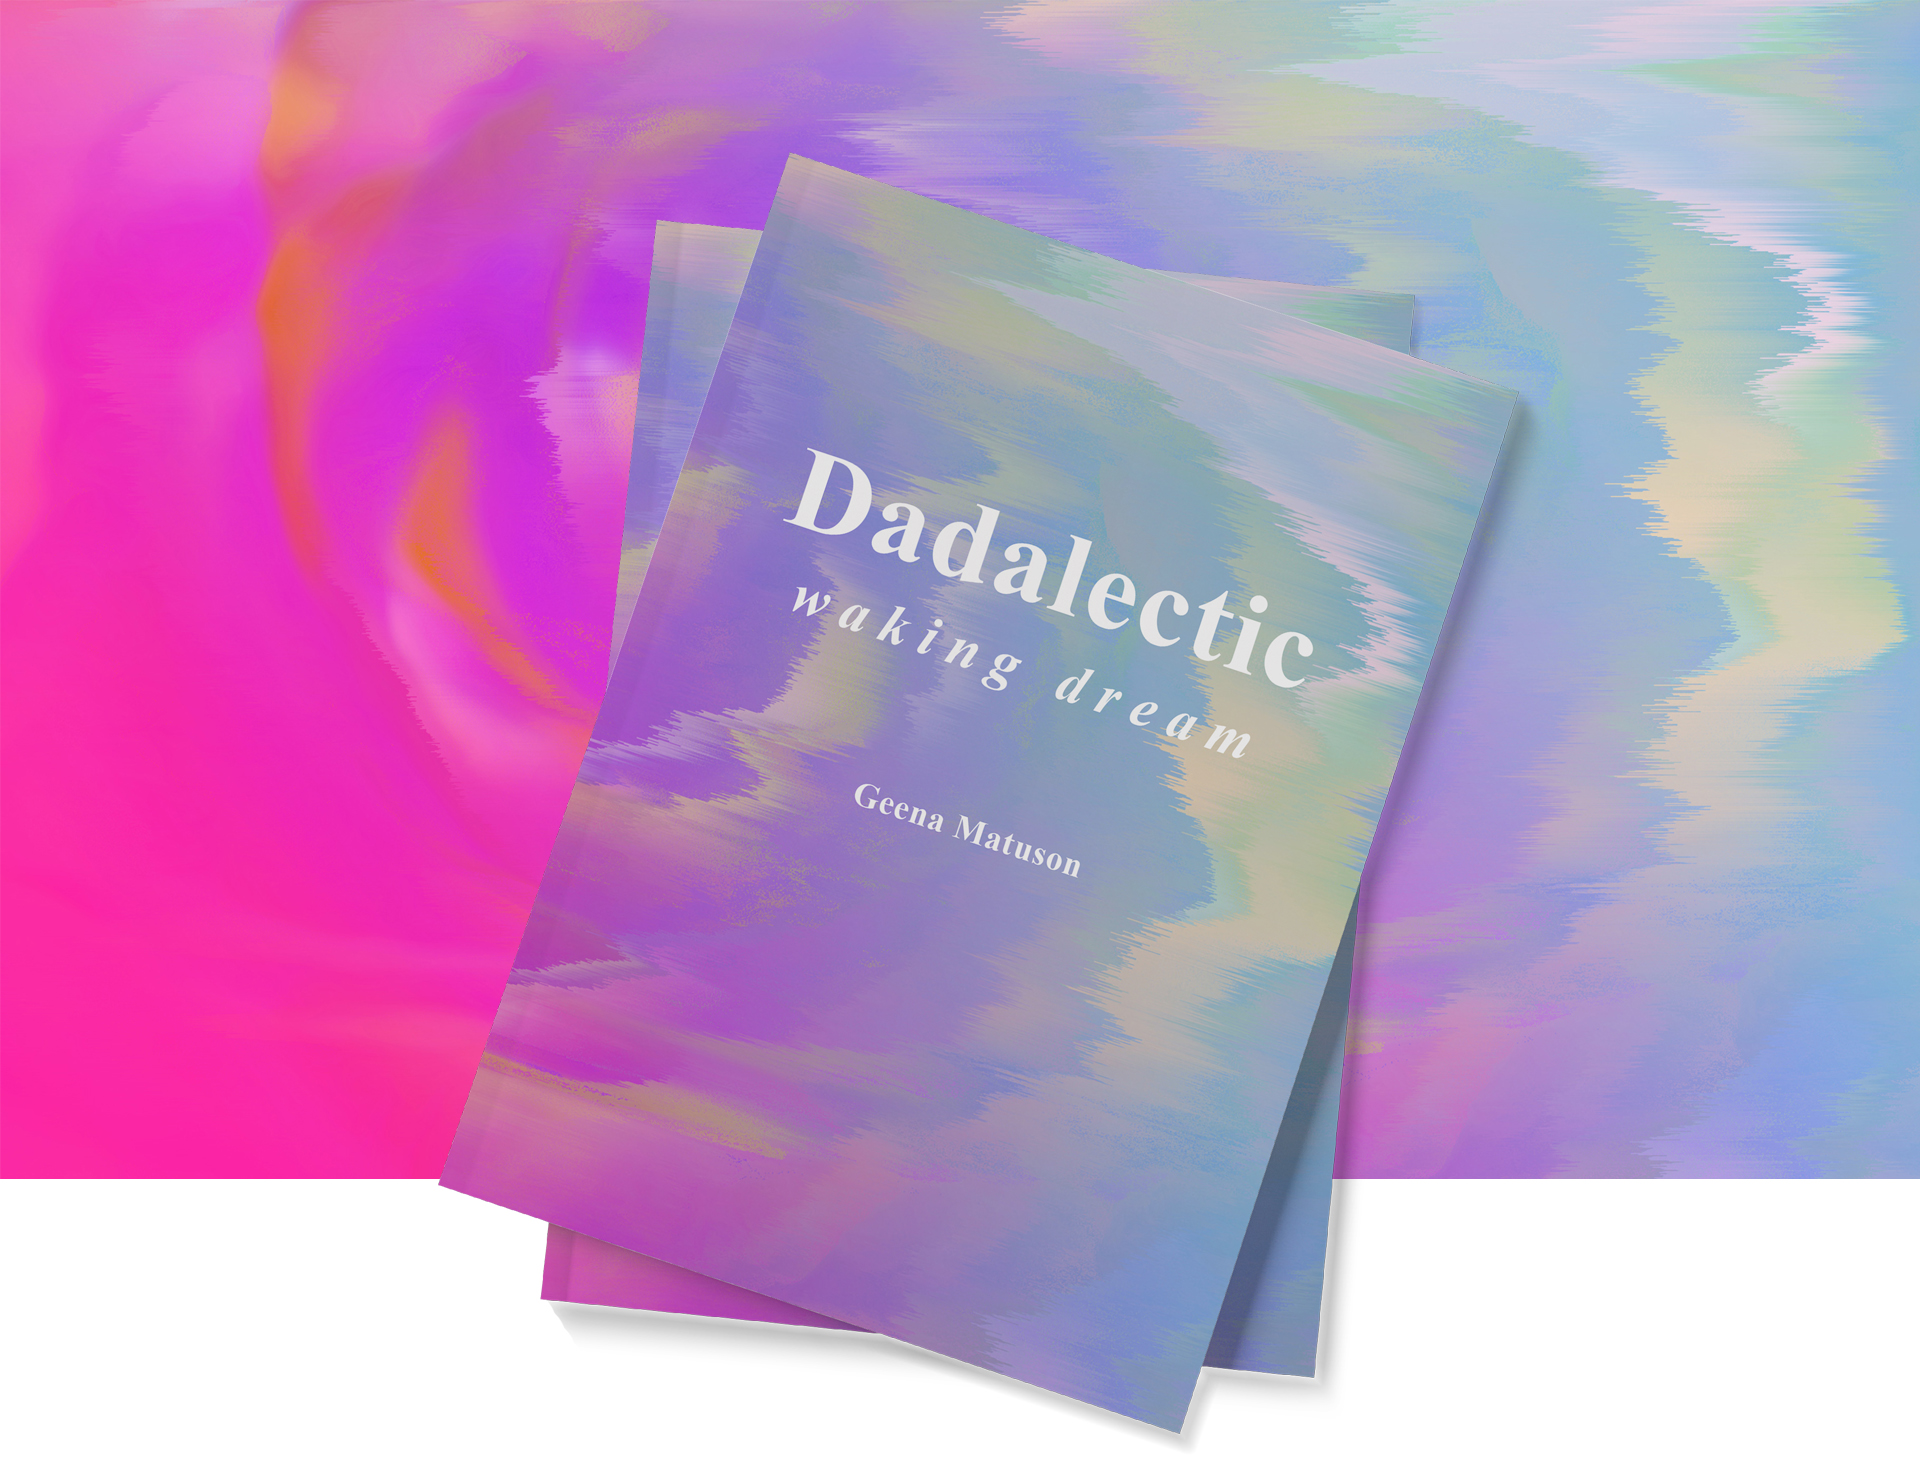 First book by Geena Matuson, Dadalectic: Waking Dream features dreamy artworks and poetic stories in this surreal work. Gets yours @ http://dadalectic.com.